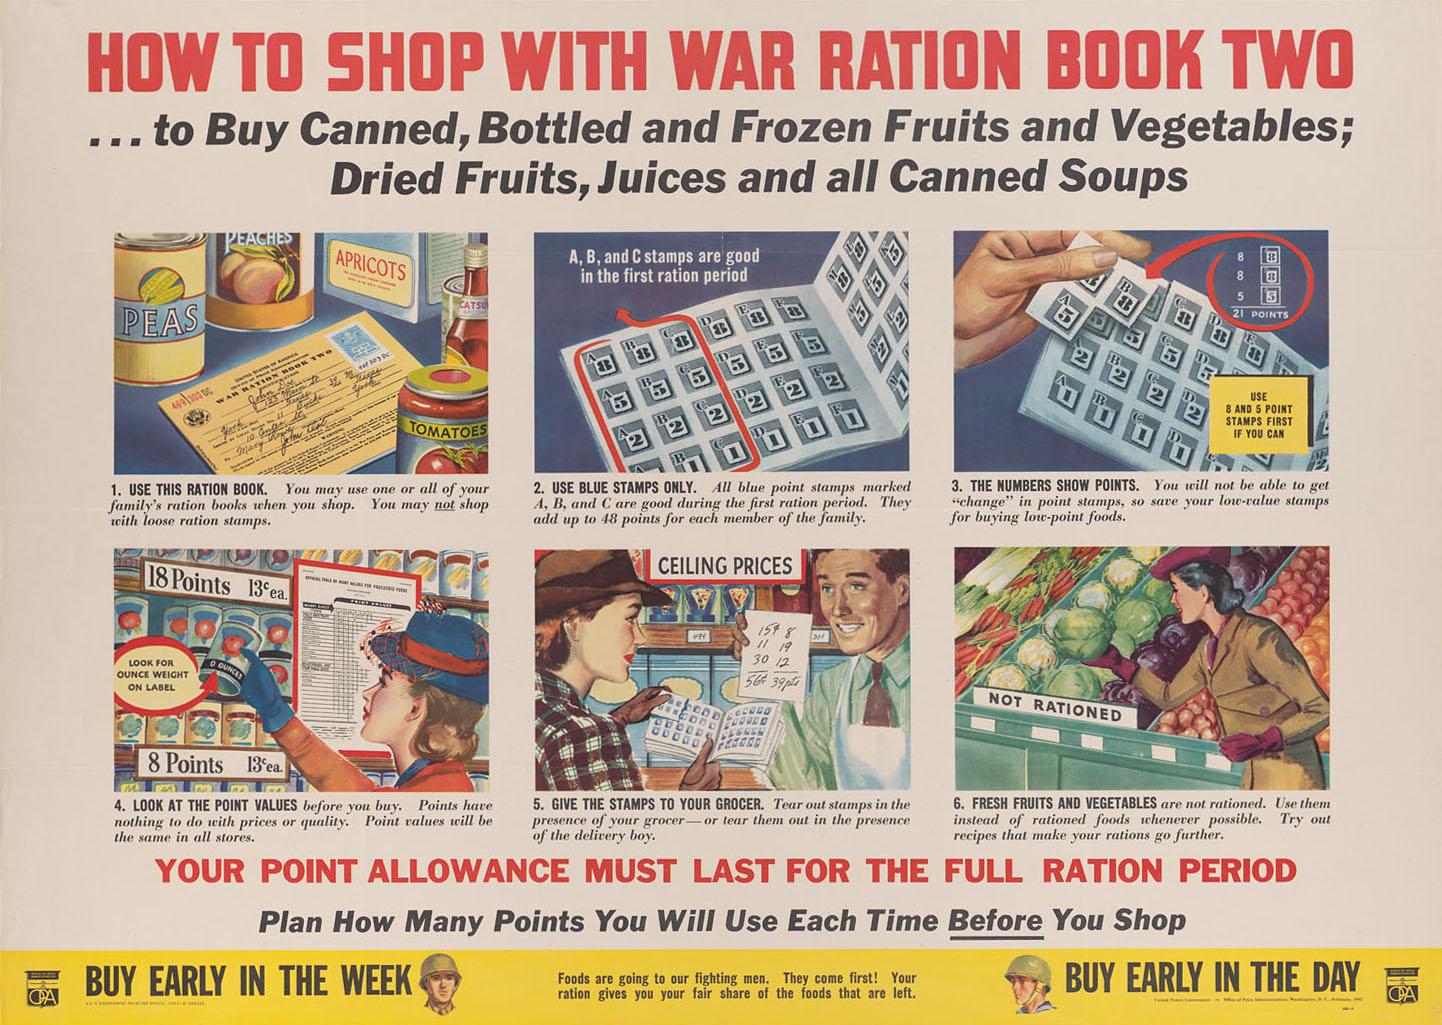 'How_to_Shop_With_Ration_Book_Two'_-_OAC_-_bk0007t0n59